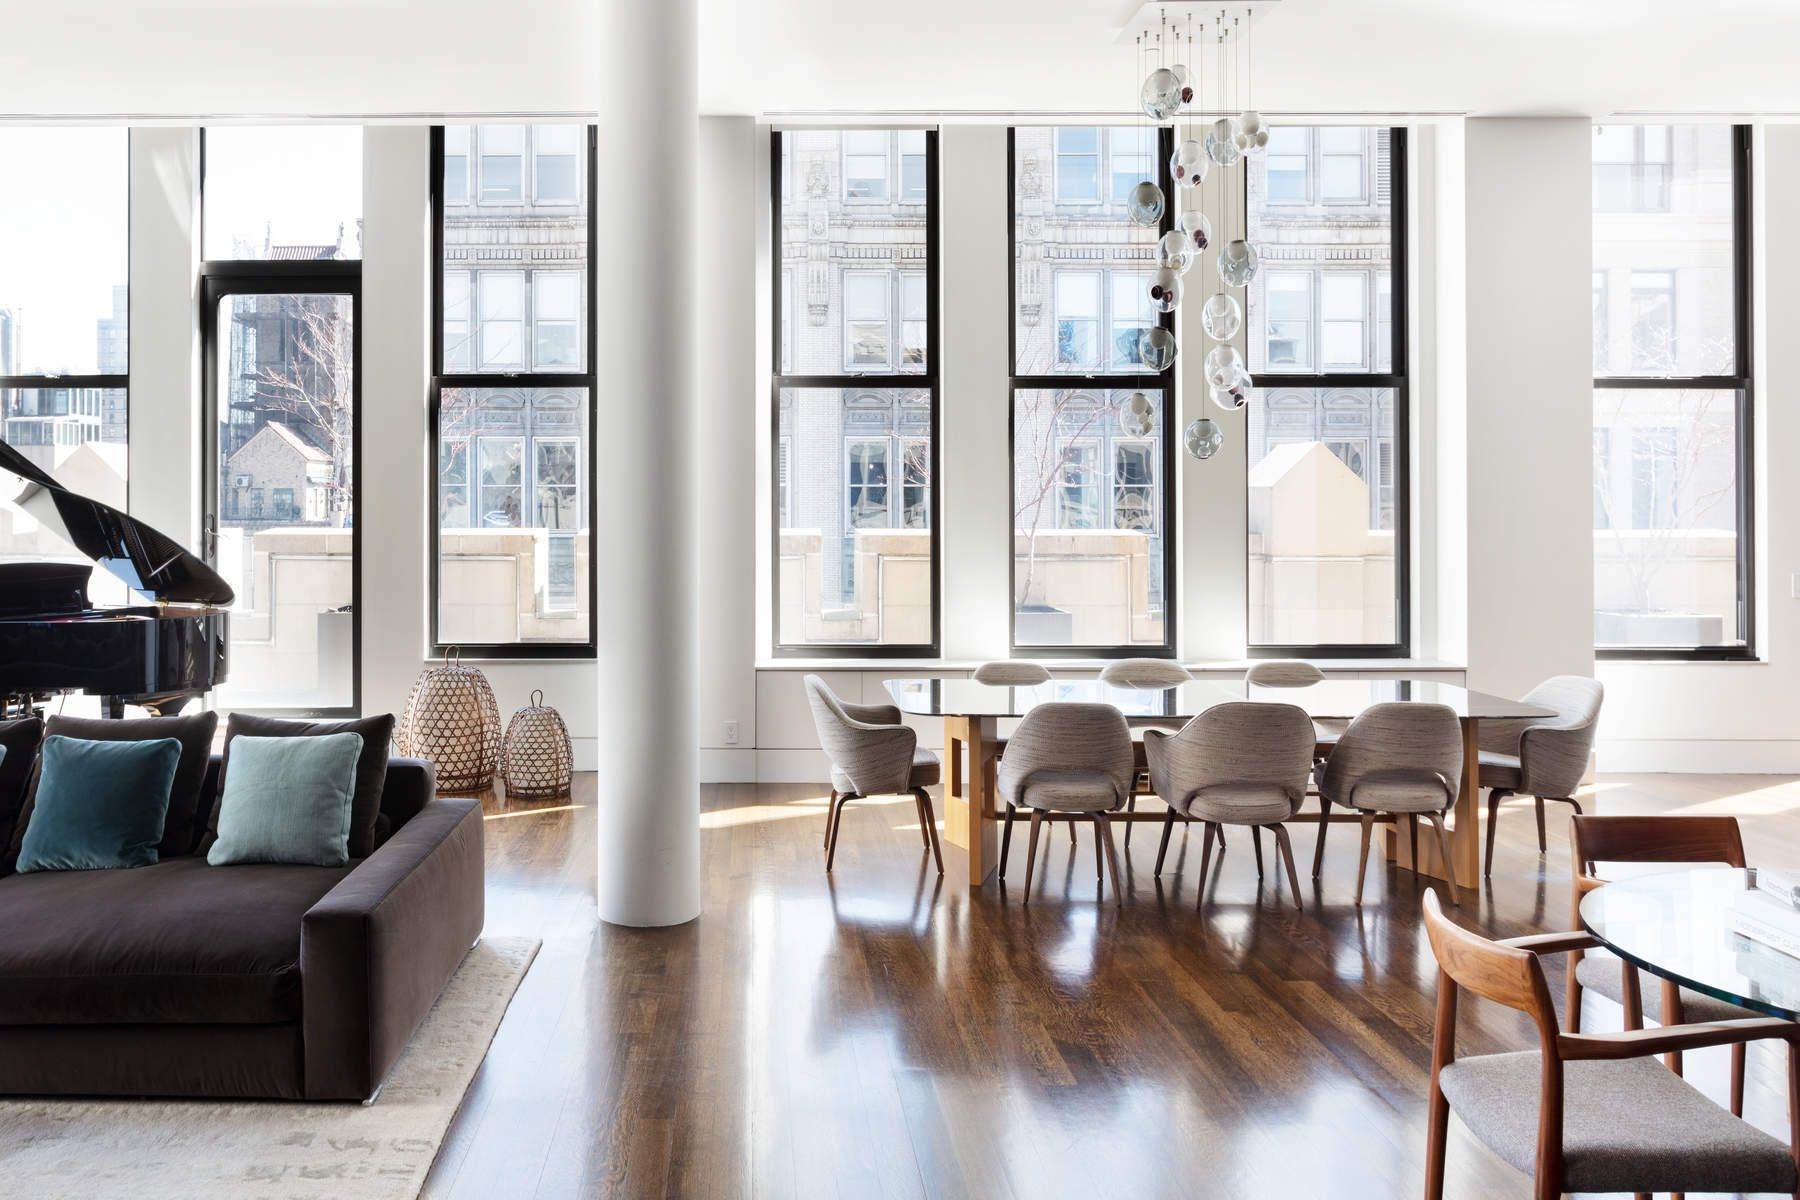 One of New York City's most extraordinary condominium penthouses located in the exciting Flatiron District, this grand loft-like space encompasses approximately 4000 sq. ft., with soaring 12 foot ceilings offering huge cubic volume, three walls of tall oversized windows, three exposures, and 3000 sq. ft. of landscaped wrap terrace imbued with quintessential New York City skyline views, catching a view of the Chrysler Building, the tops of two beautiful golden domes, and the last hand-painted billboard in New York City.    Accessed from a private elevator landing, this pristine 9 room, 3 bedroom, 3.5 bath Penthouse offers an exceptional 50 foot long center gallery leading to a grand 55 foot x 27 foot great room with a view of the Chrysler Building.   This exceptional corner great room has dark walnut stained oak floor, 12 foot ceiling, superb light through three walls of tall wrap around windows, and four doors leading to the landscaped terrace facing north, east and south, which wraps the entire Penthouse in greenery, and all of which offers an exquisite space for comfortable family living as well as lavish entertaining.   The great room includes a stunning state-of-the-art eat-in loft-like open kitchen with 12 foot ceiling and features Calcutta marble countertops and island, slate backsplash, custom walnut cabinetry, top-of-the-line appliances including a Viking stove, Sub Zero refrigerator, Bosch dishwasher, wine refrigerator and ample counter space and storage.   The kitchen has access to the terrace and the outdoor barbeque and dining area under a grand architectural portico of extraordinary scale and proportion.   The expansive master bedroom suite has a 12 foot ceiling, a door leading to the wrap landscaped terrace and a huge window overlooking the terrace, a spa-like en-suite bath of silver travertine and limestone, premium fixtures, double sink vanity,  Kohler oversized soaking tub, separate glass enclosed shower with large rain head shower, and a huge walk-